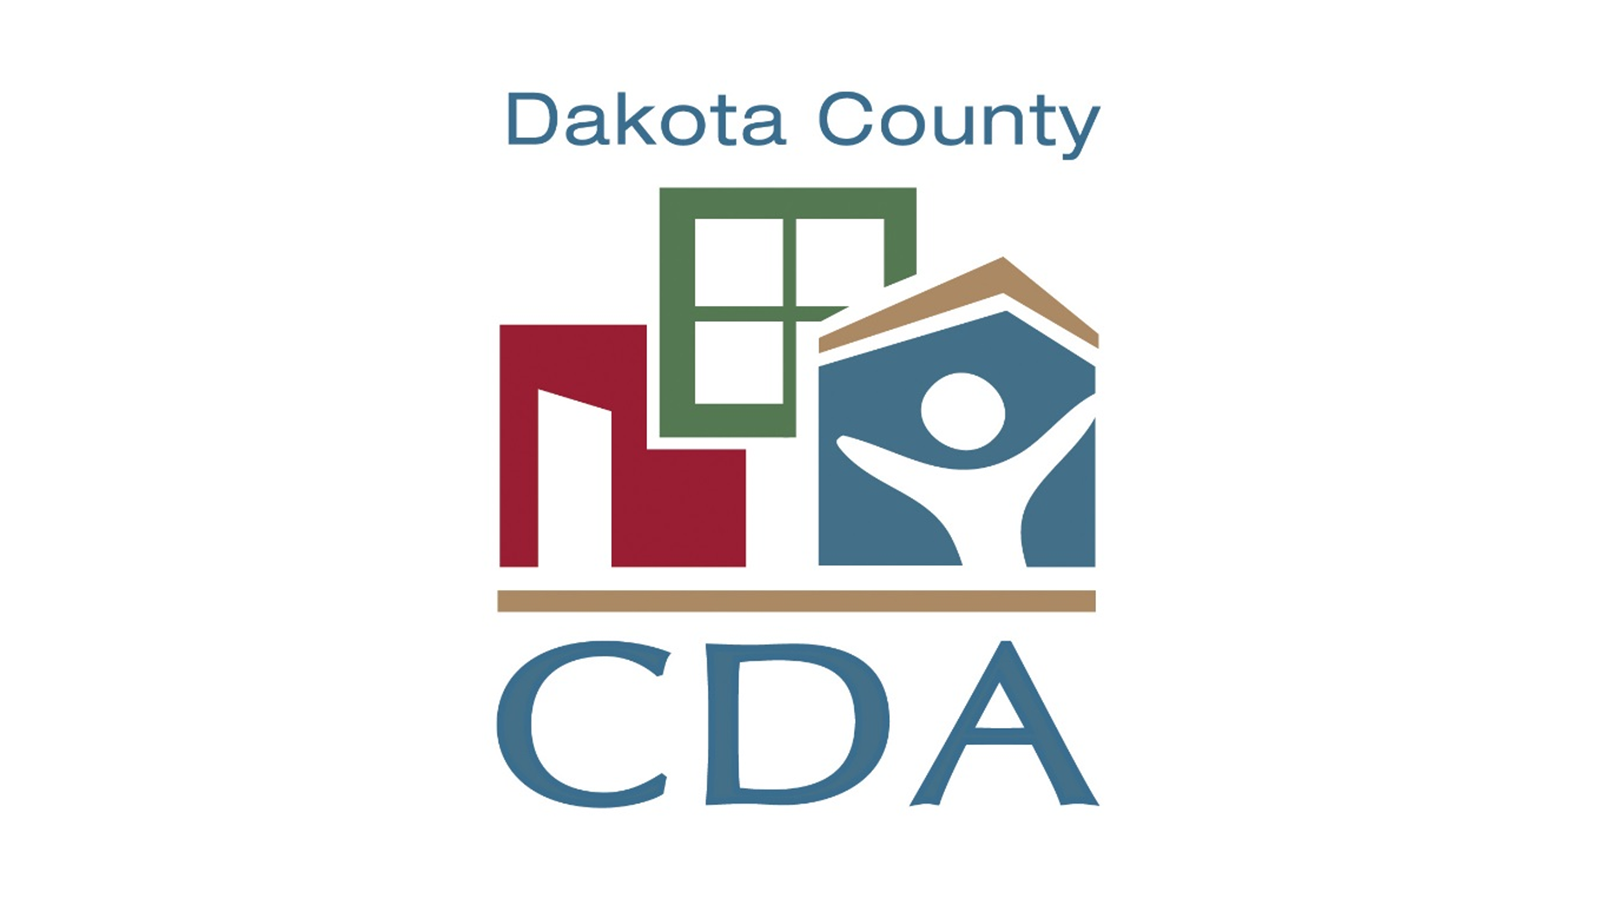 Dakota County CDA logo